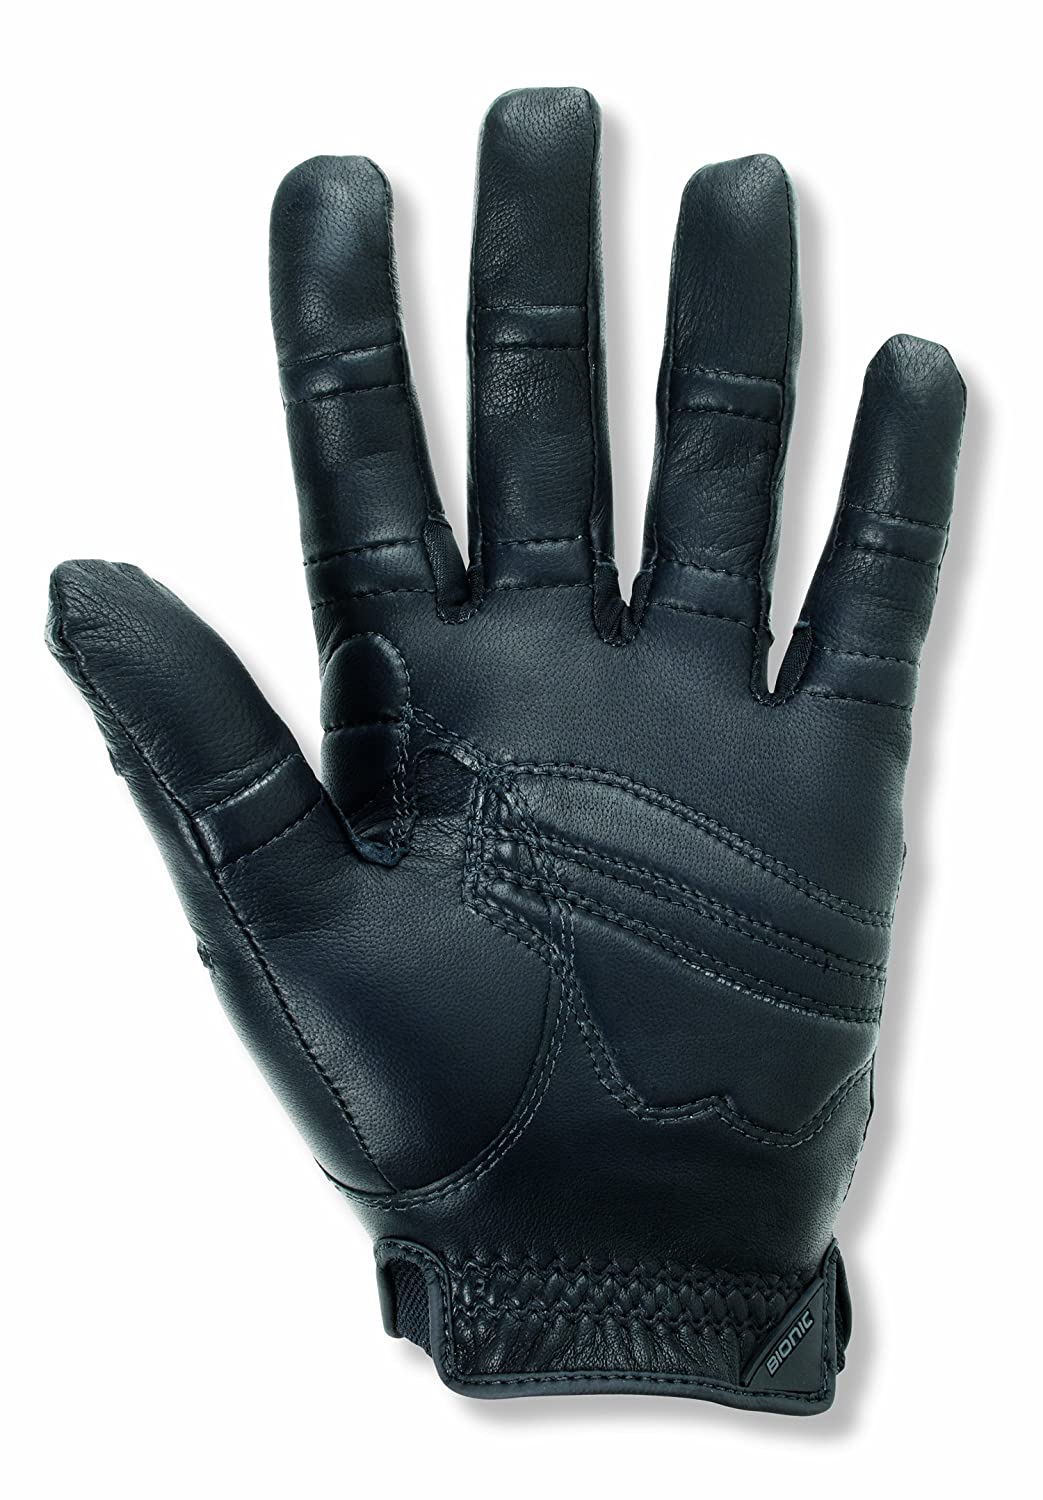 Mens gloves use iphone - Mens Gloves Use Iphone 13